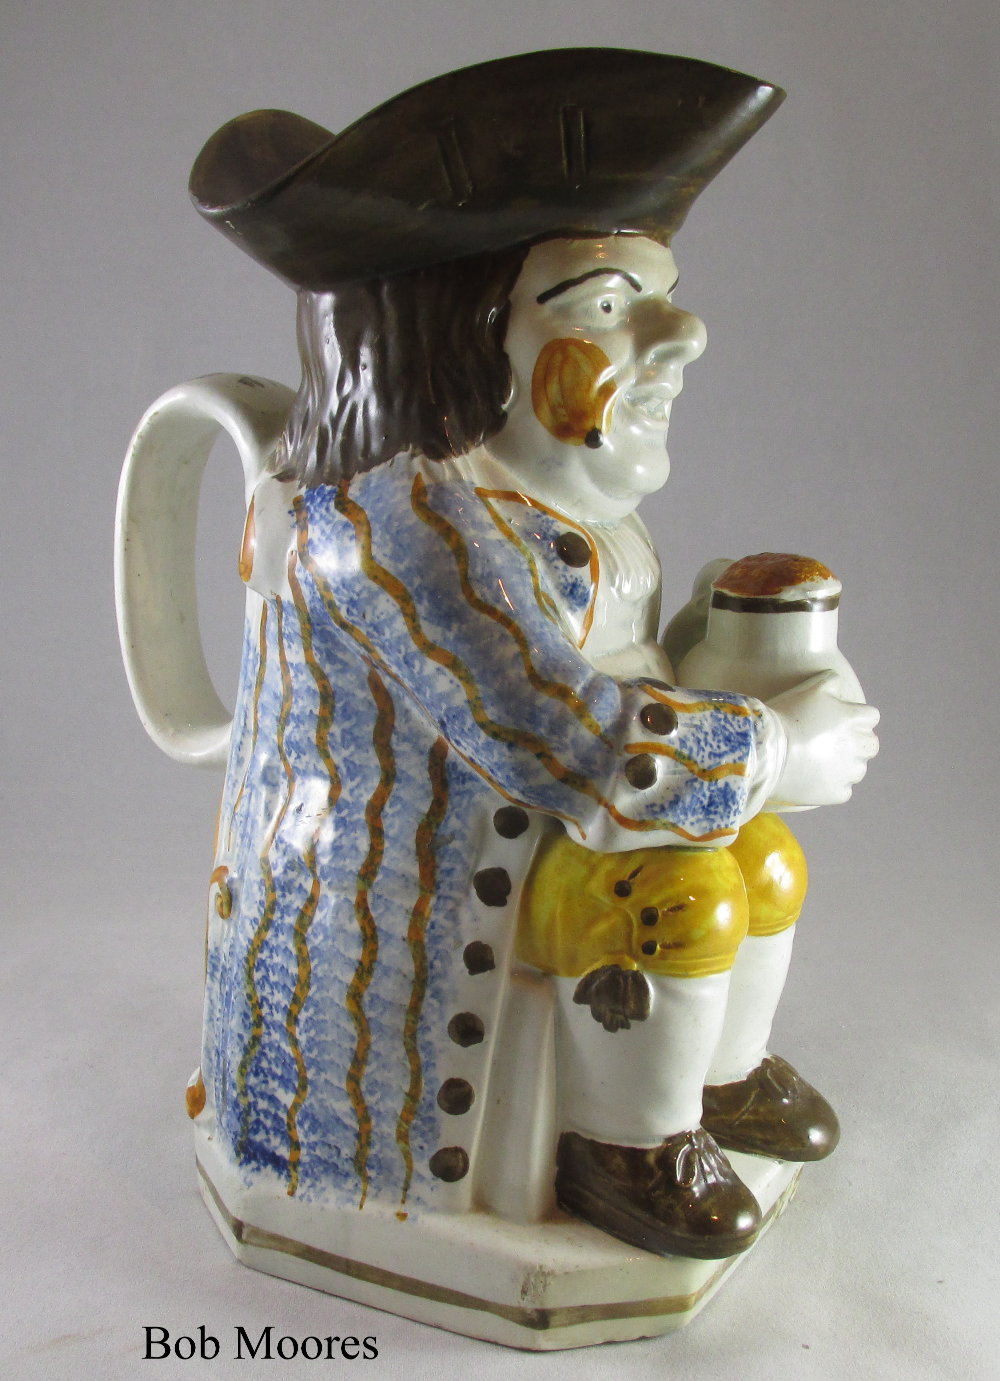 Good Prattware Toby jug c.1790 ex Captain Price collection